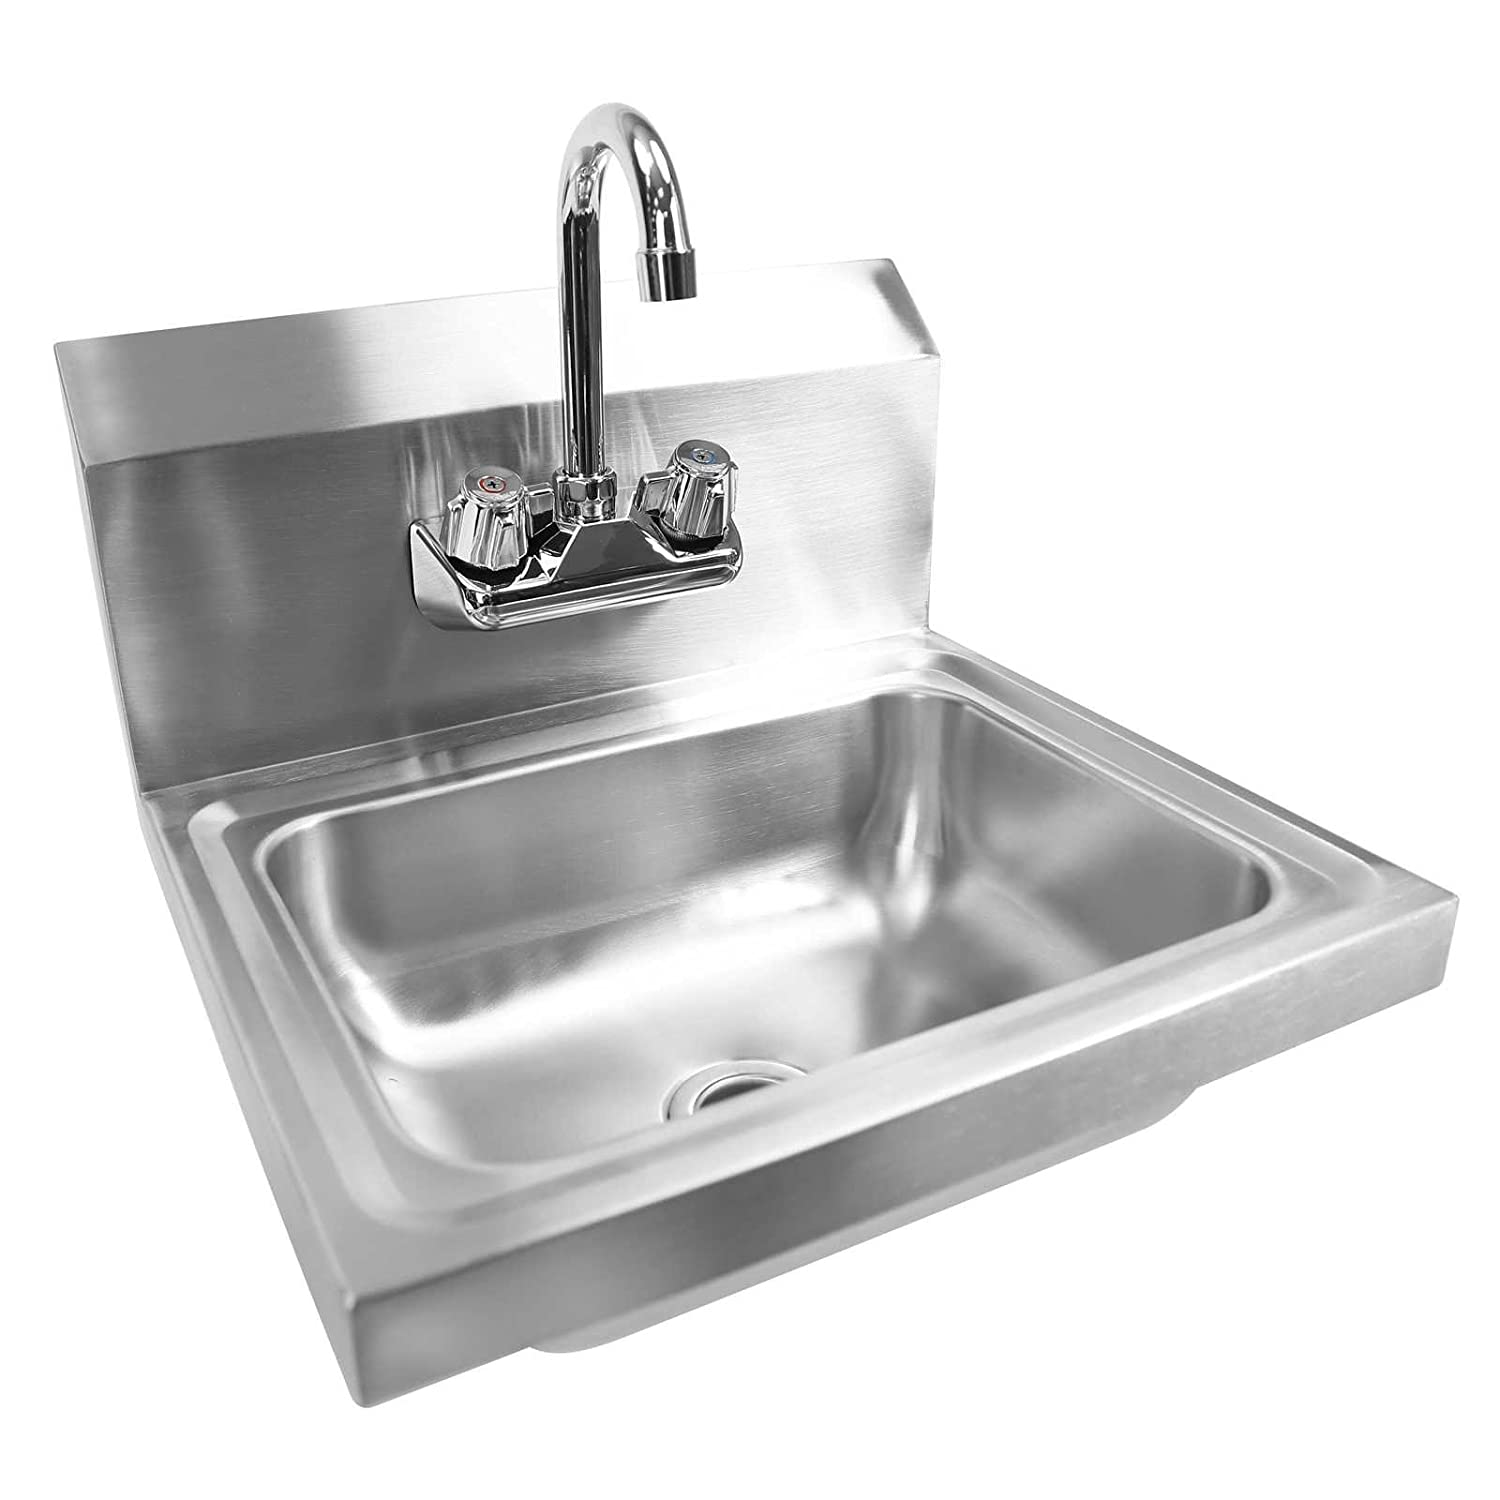 Gridmann Commercial NSF Stainless Steel Sink - Wall Mount Hand ...